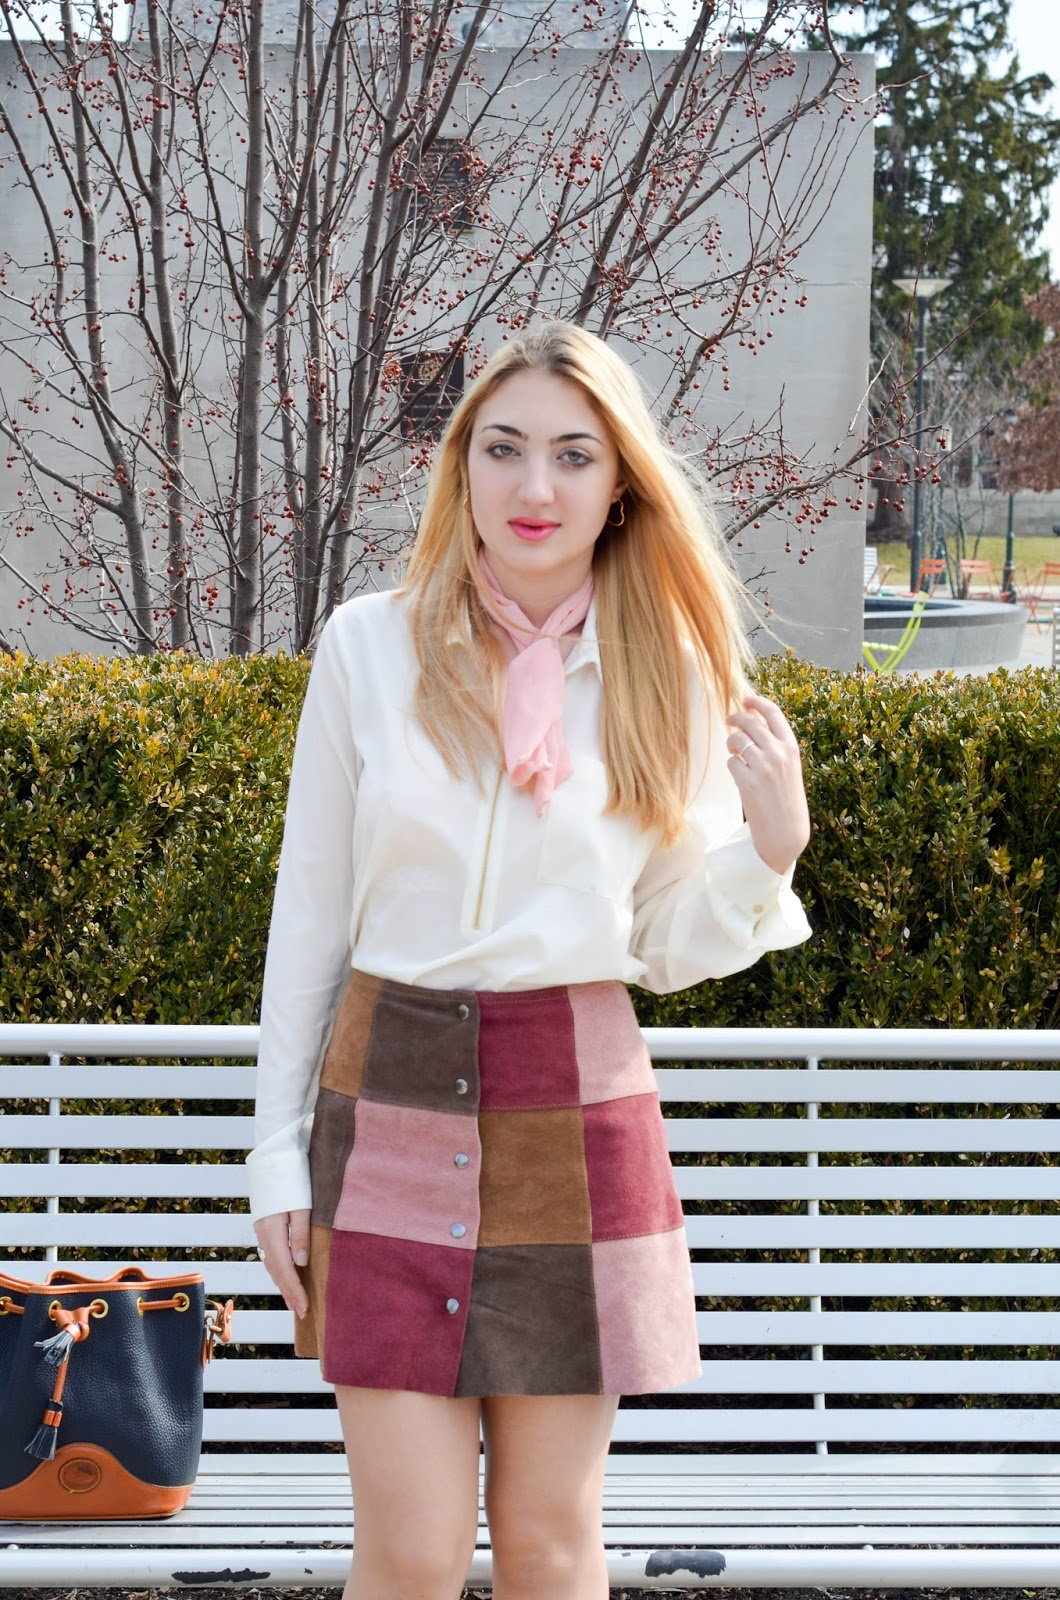 The Parisian Chic Patchwork Skirt